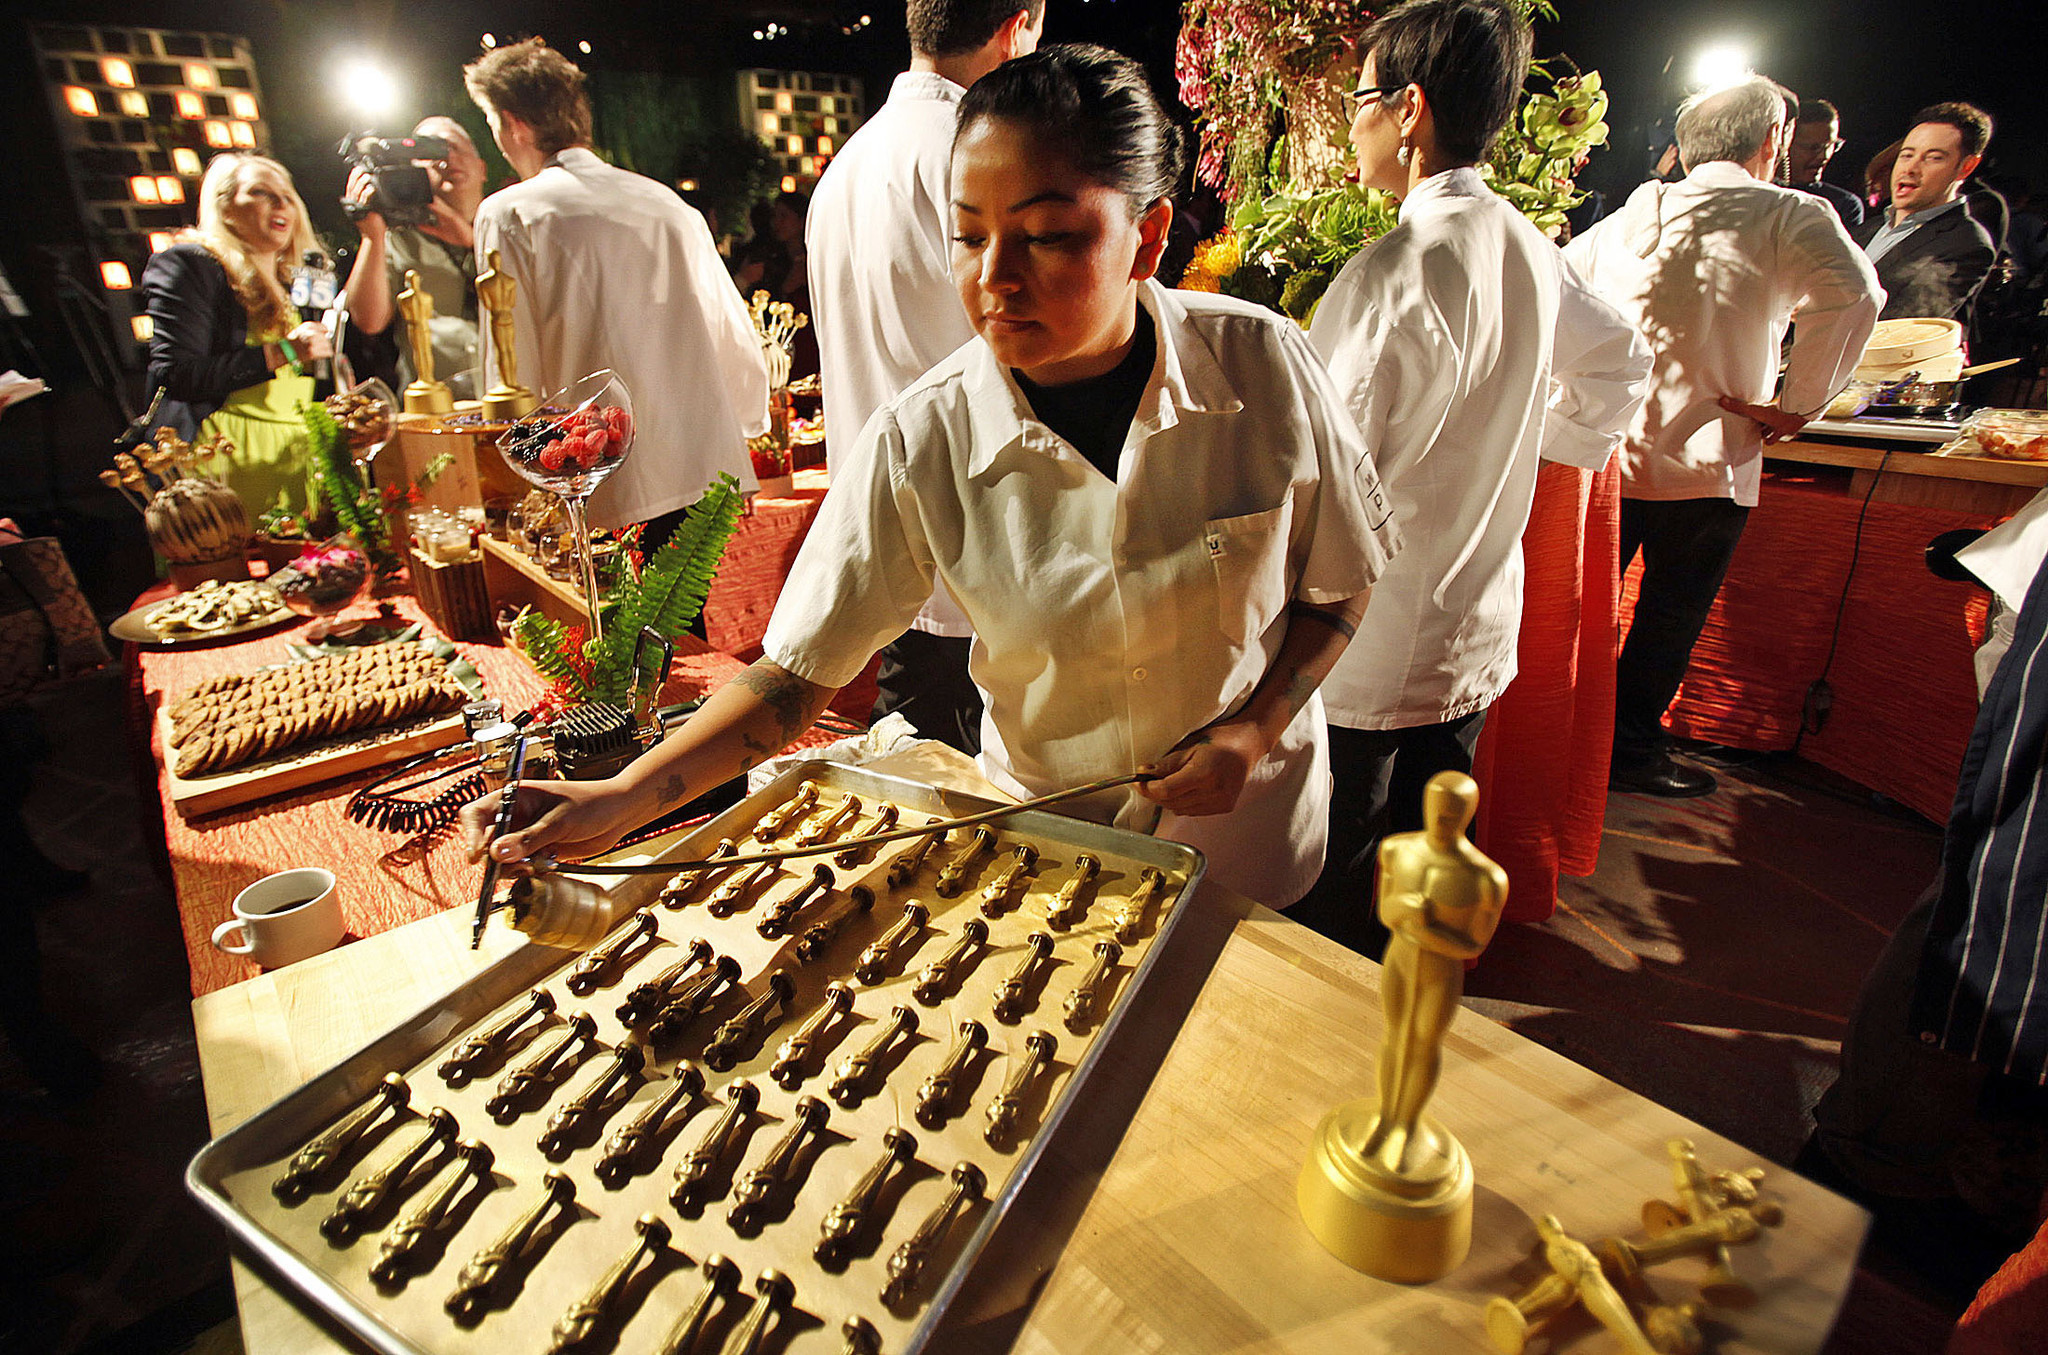 Oscars 2014 Governors Ball fare: Oysters, truffles and potato chips - LA Times